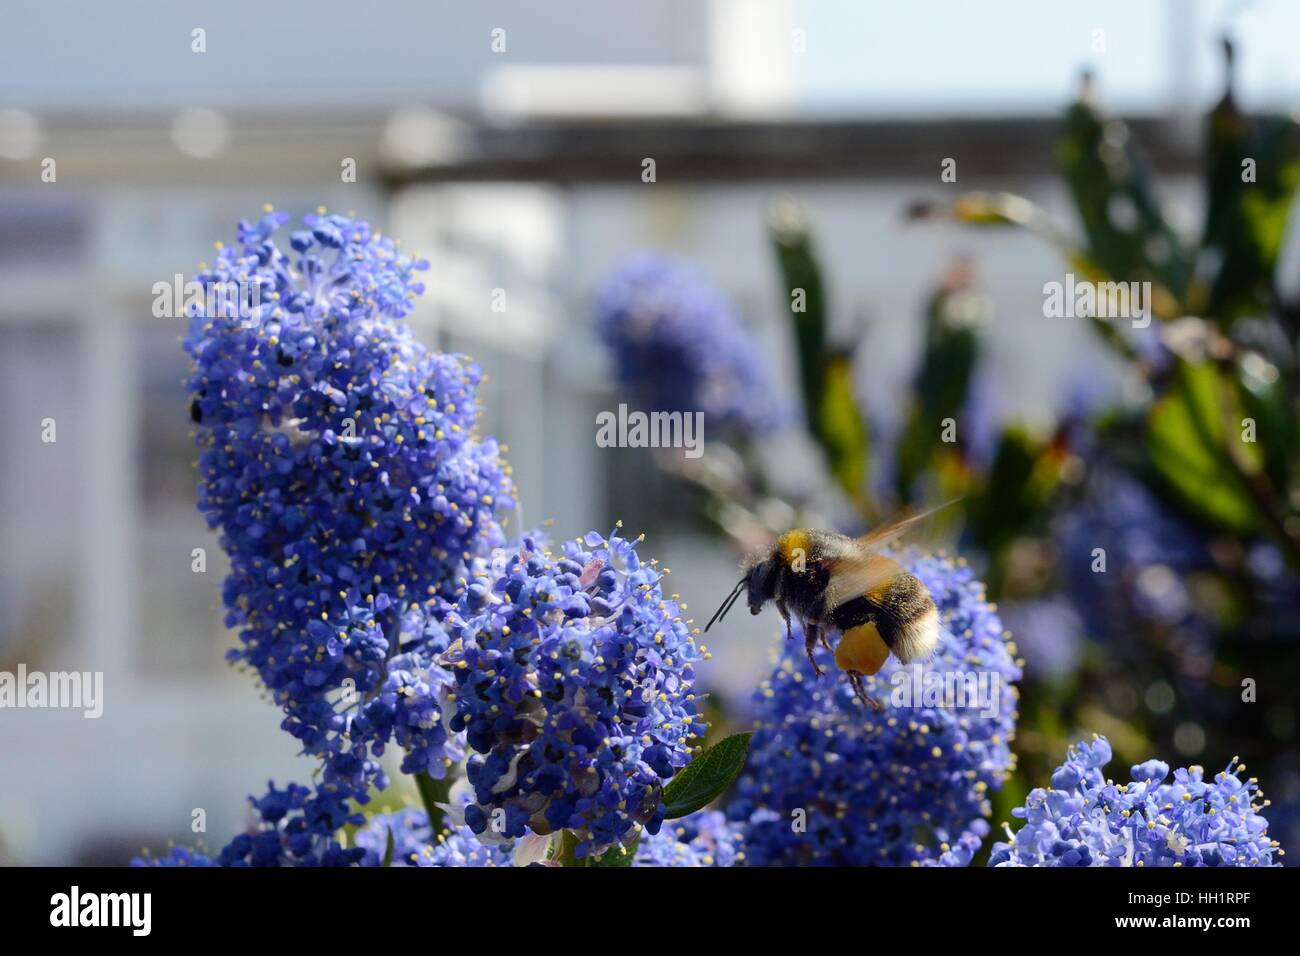 Buff-tailed bumblebee (Bombus terrestris) flying to Ceanothus flowers in a garden planted with flowers to attract - Stock Image